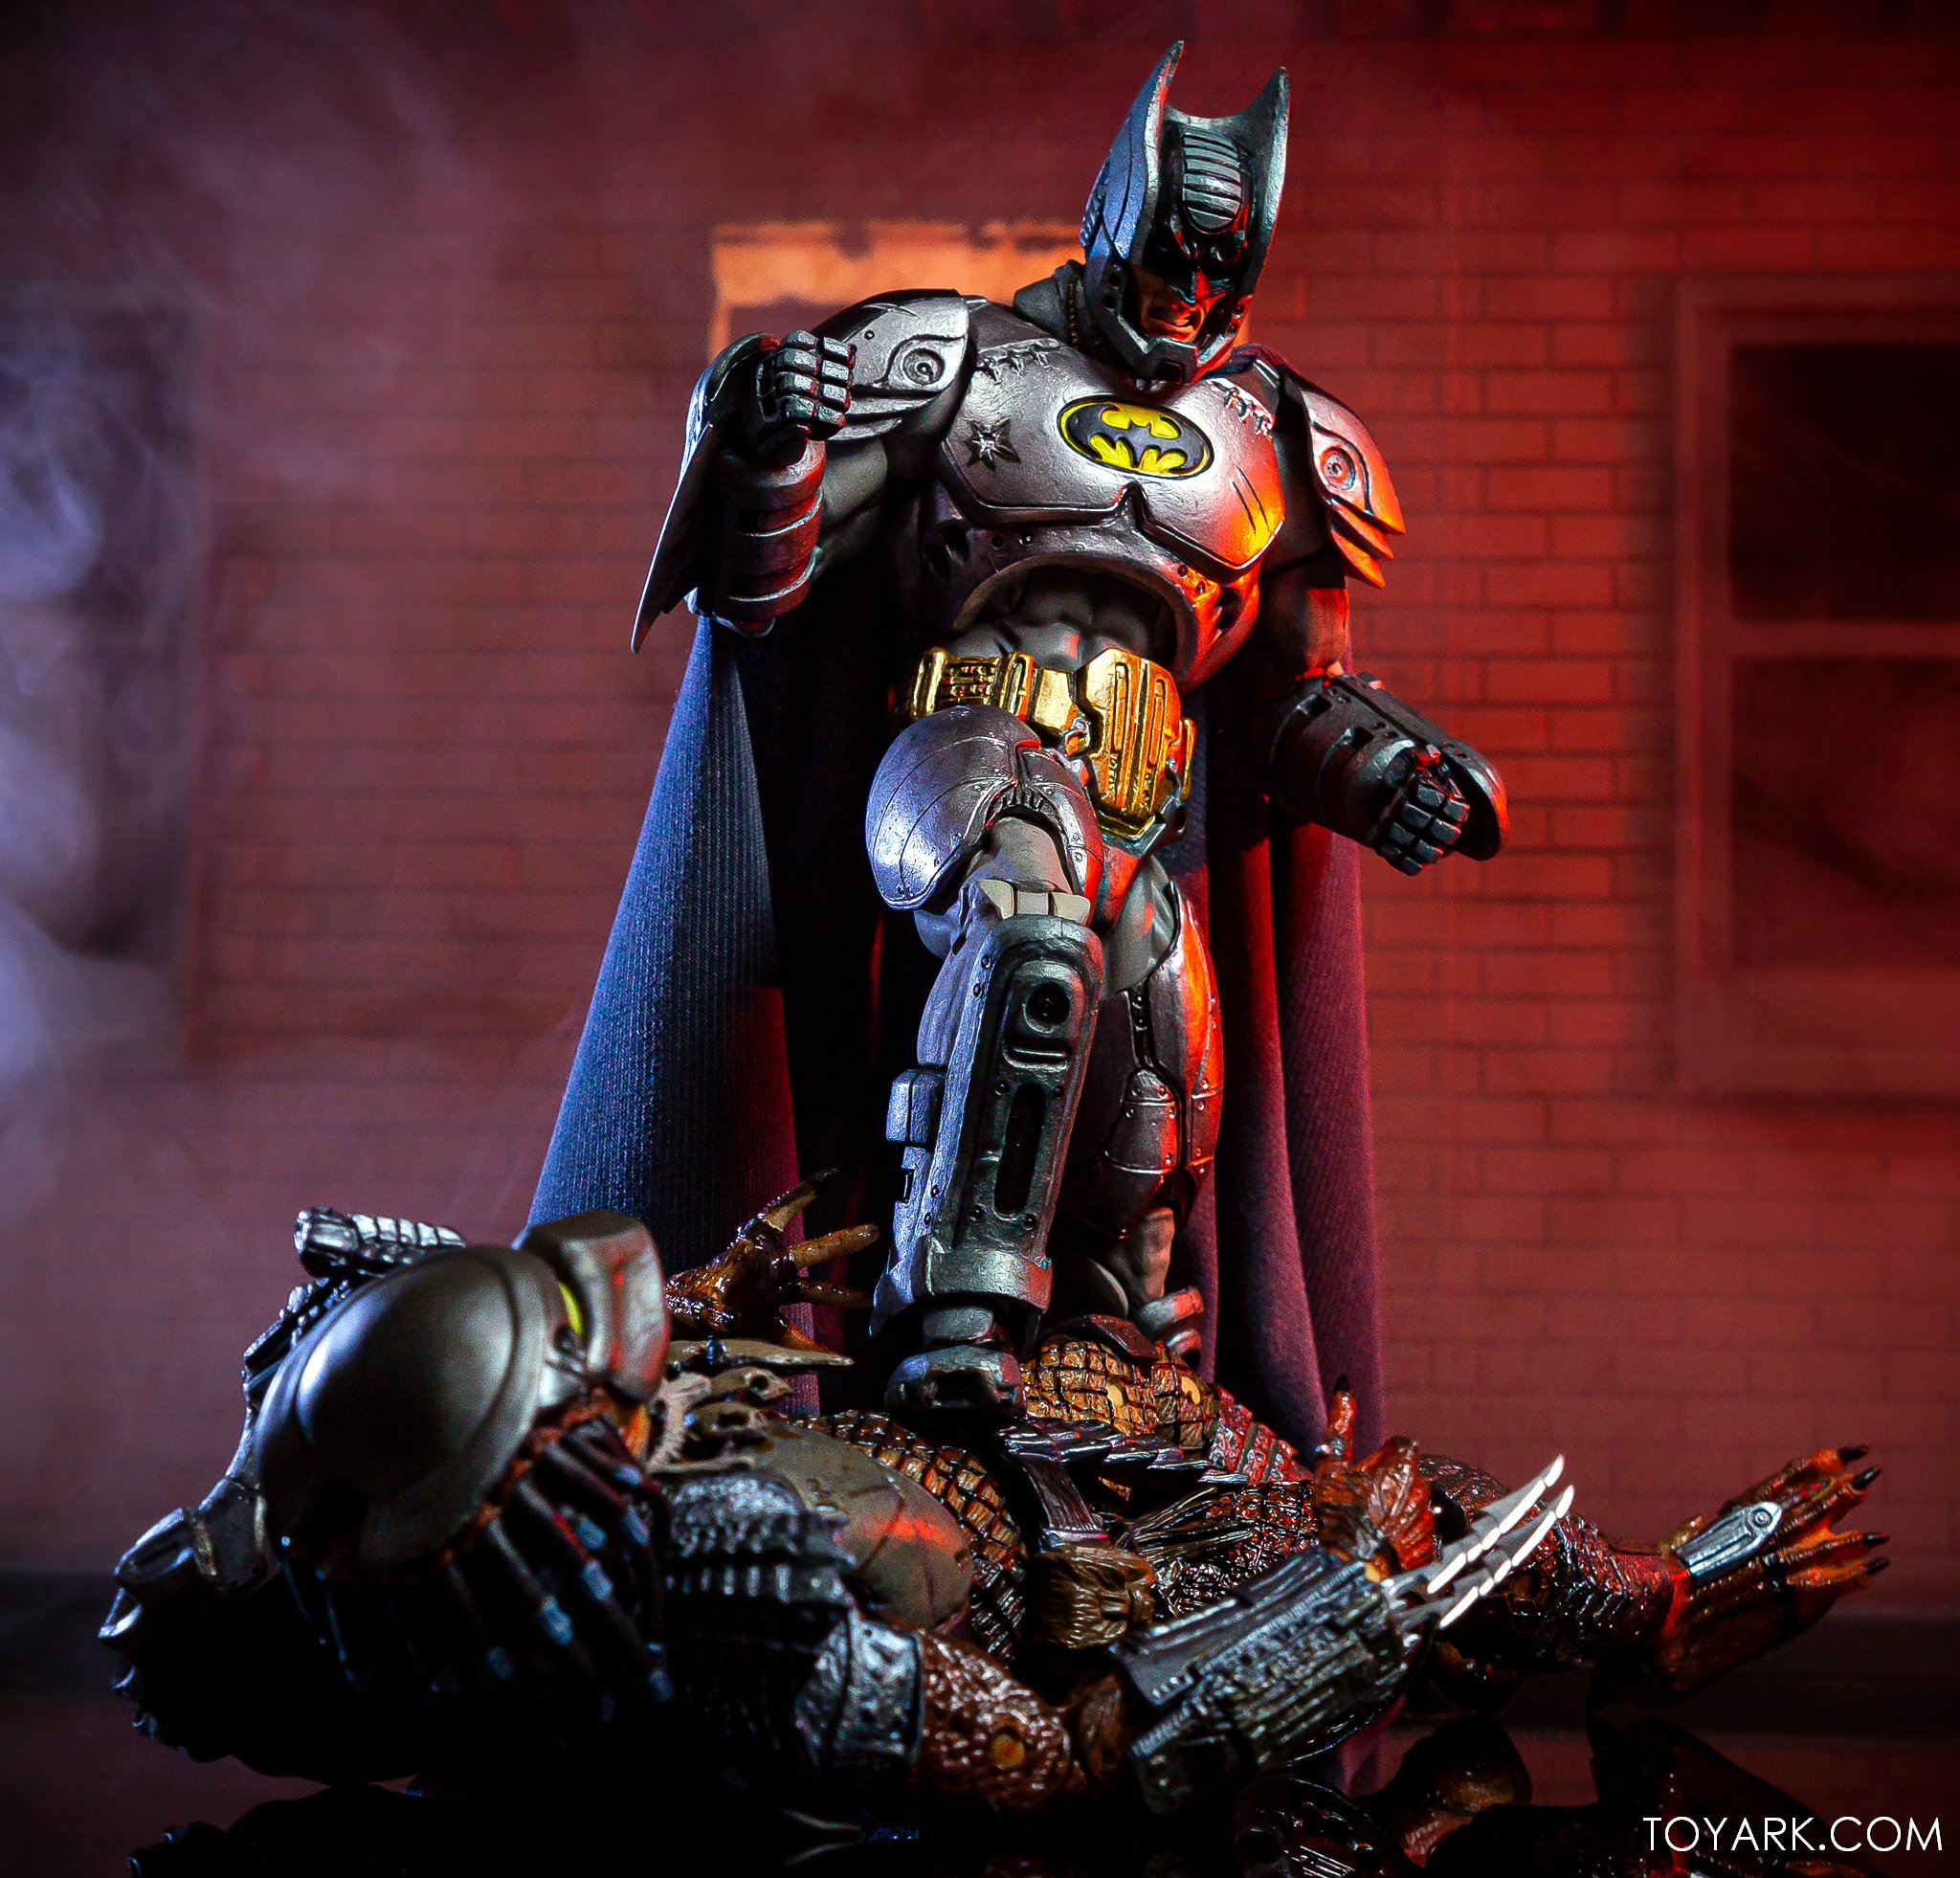 https://news.toyark.com/wp-content/uploads/sites/4/2019/09/Batman-vs-Predator-Set-050.jpg